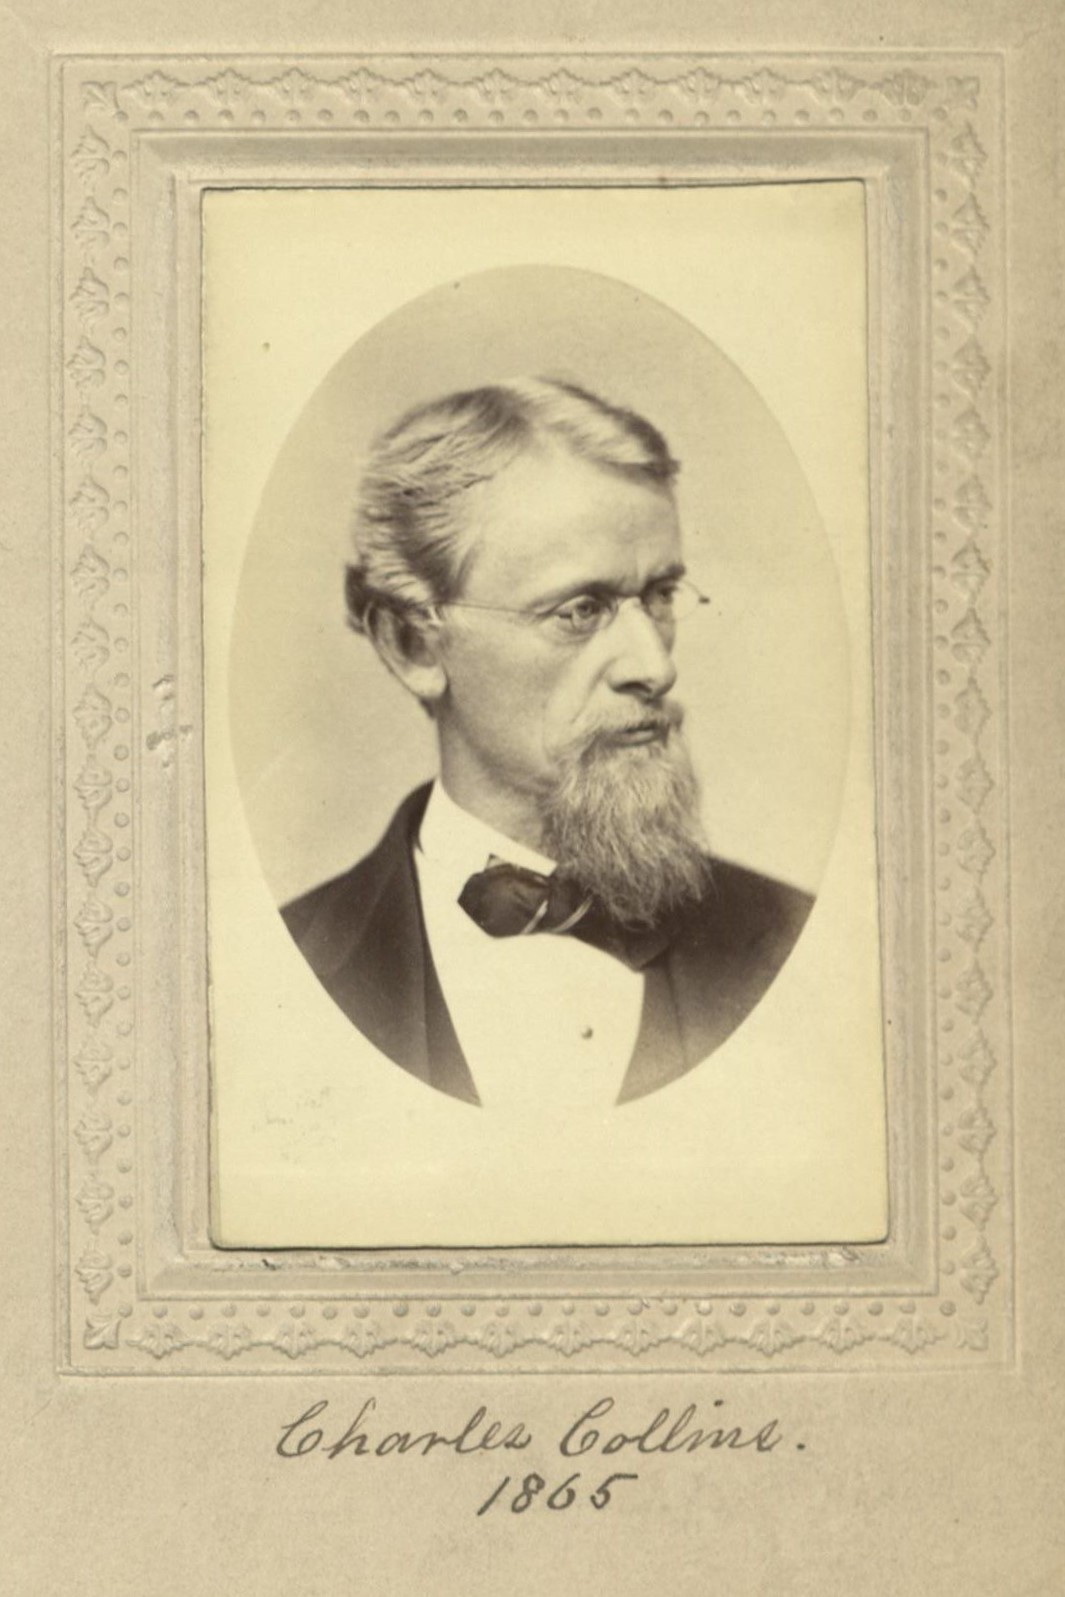 Member portrait of Charles Collins